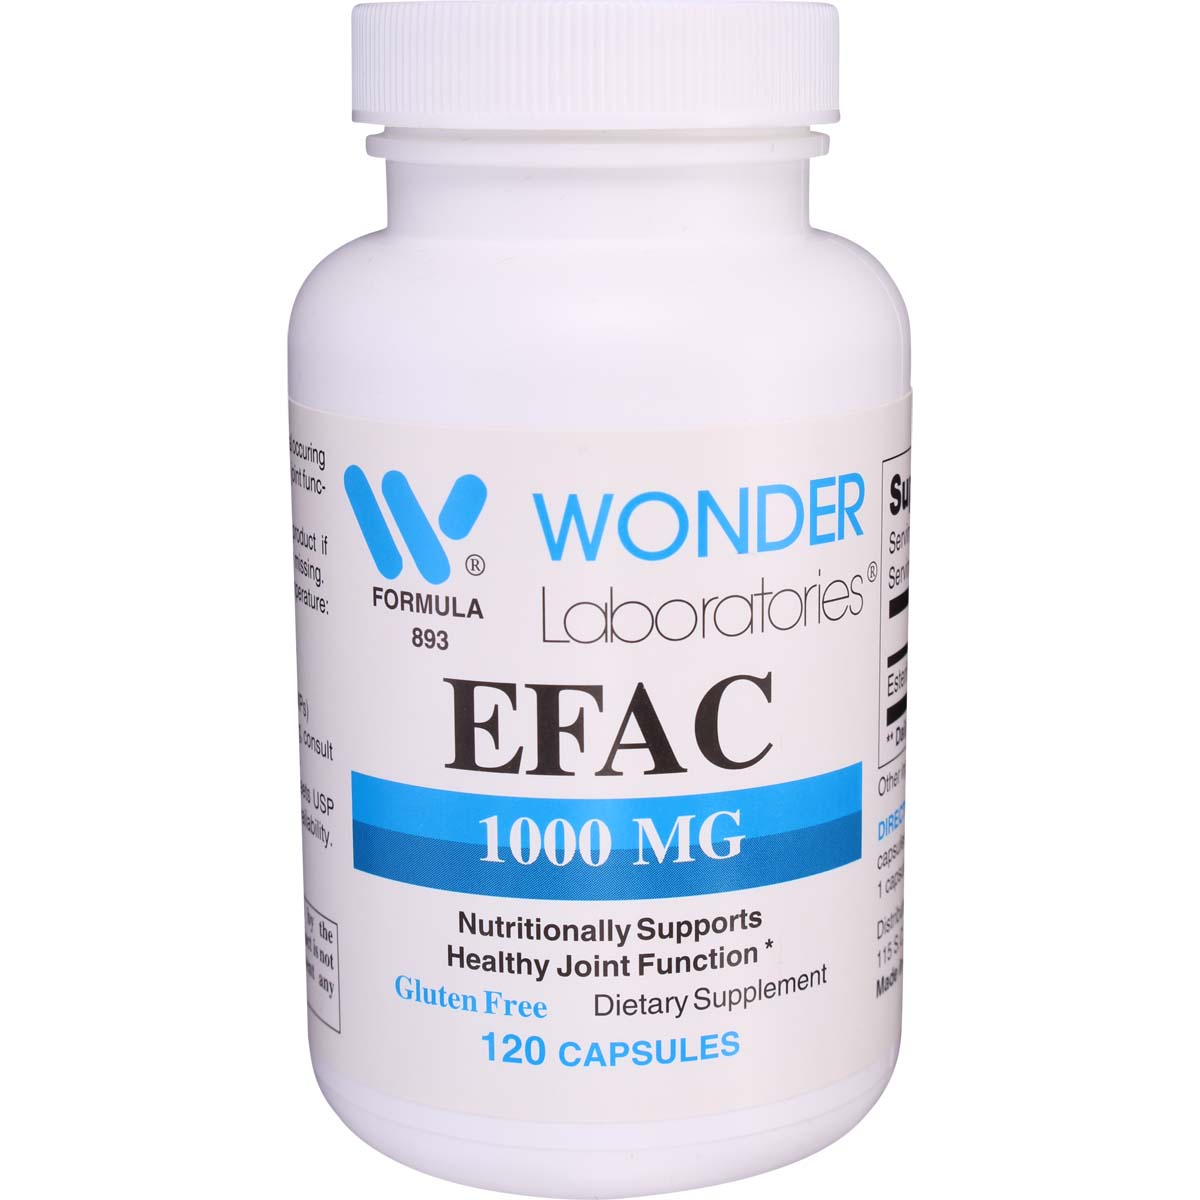 EFAC Joint Supplement Caps for Human Use Only 90 Count Arthritis Joint Pain